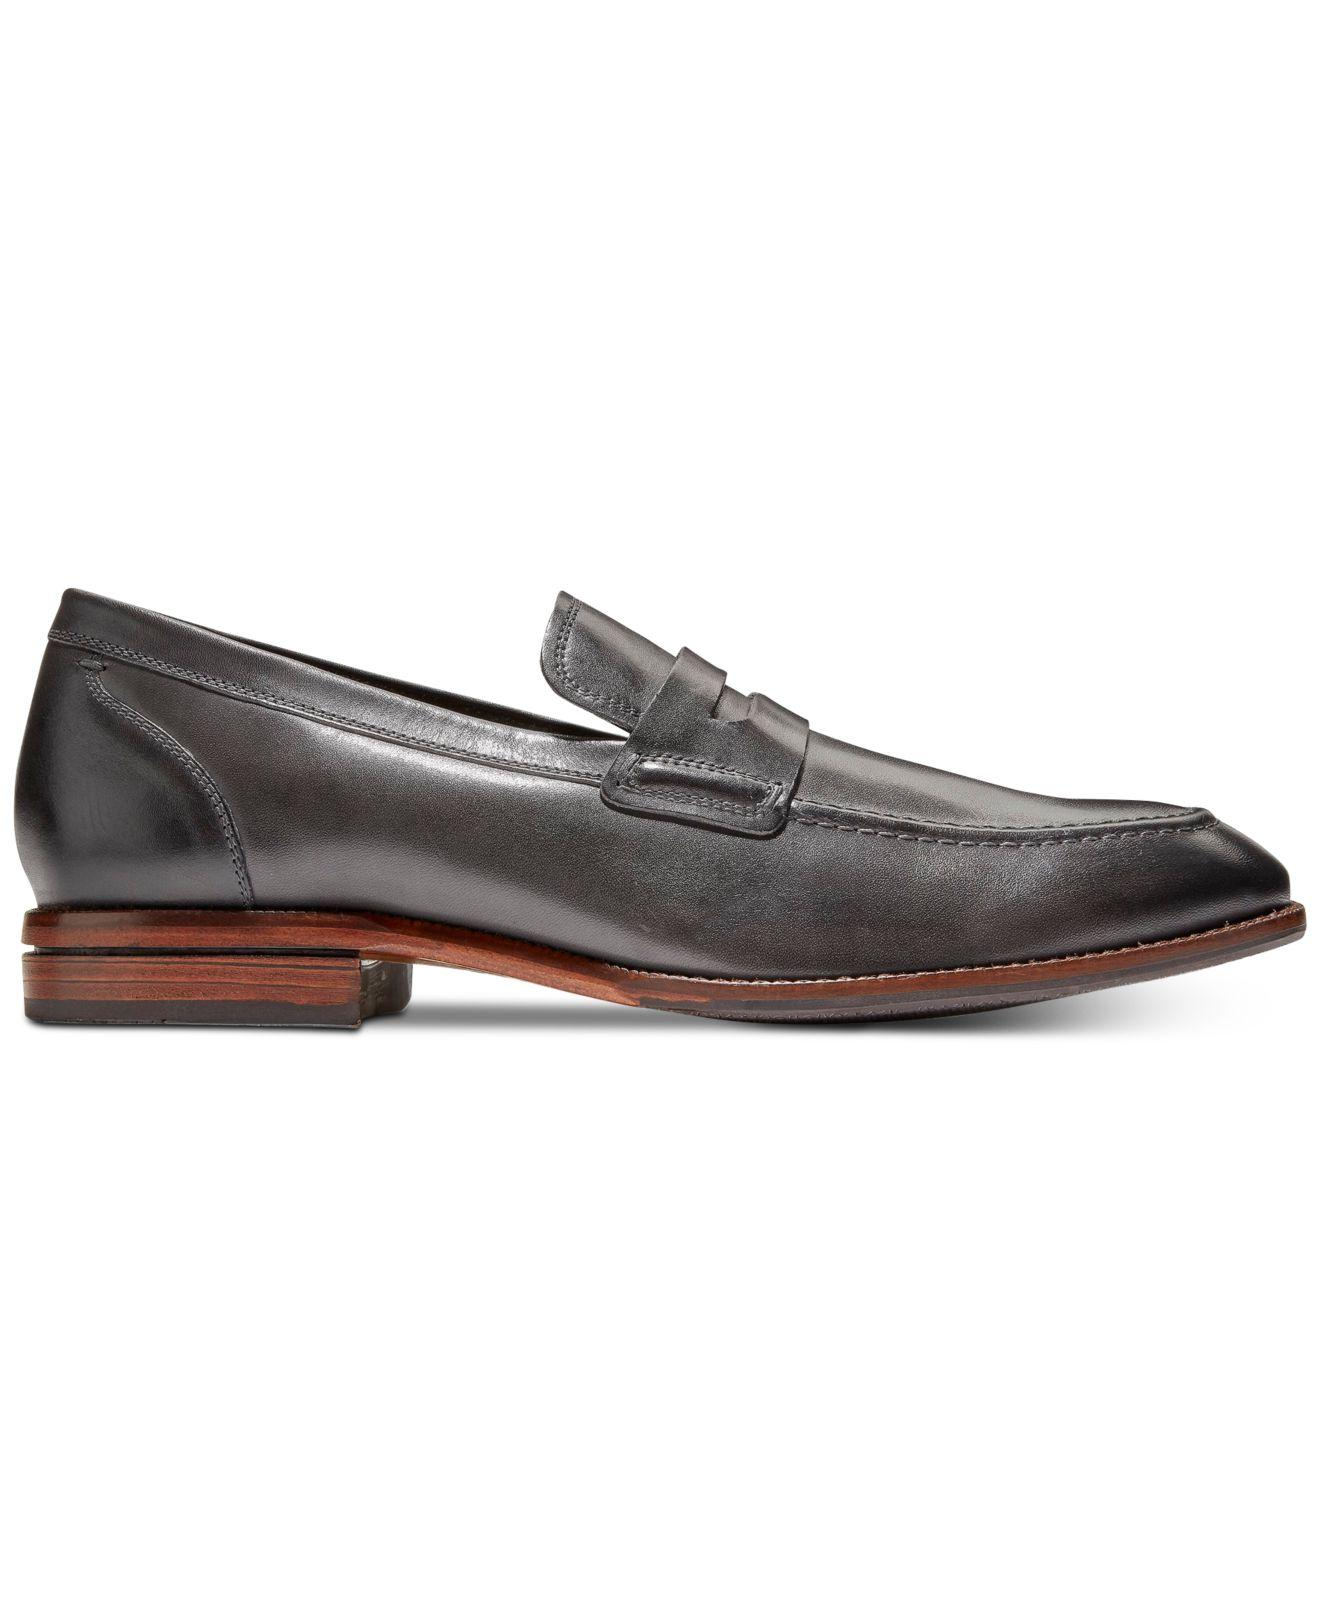 af69c20e5d5 Lyst - Cole Haan Williams 2.0 Grand Penny Loafers for Men